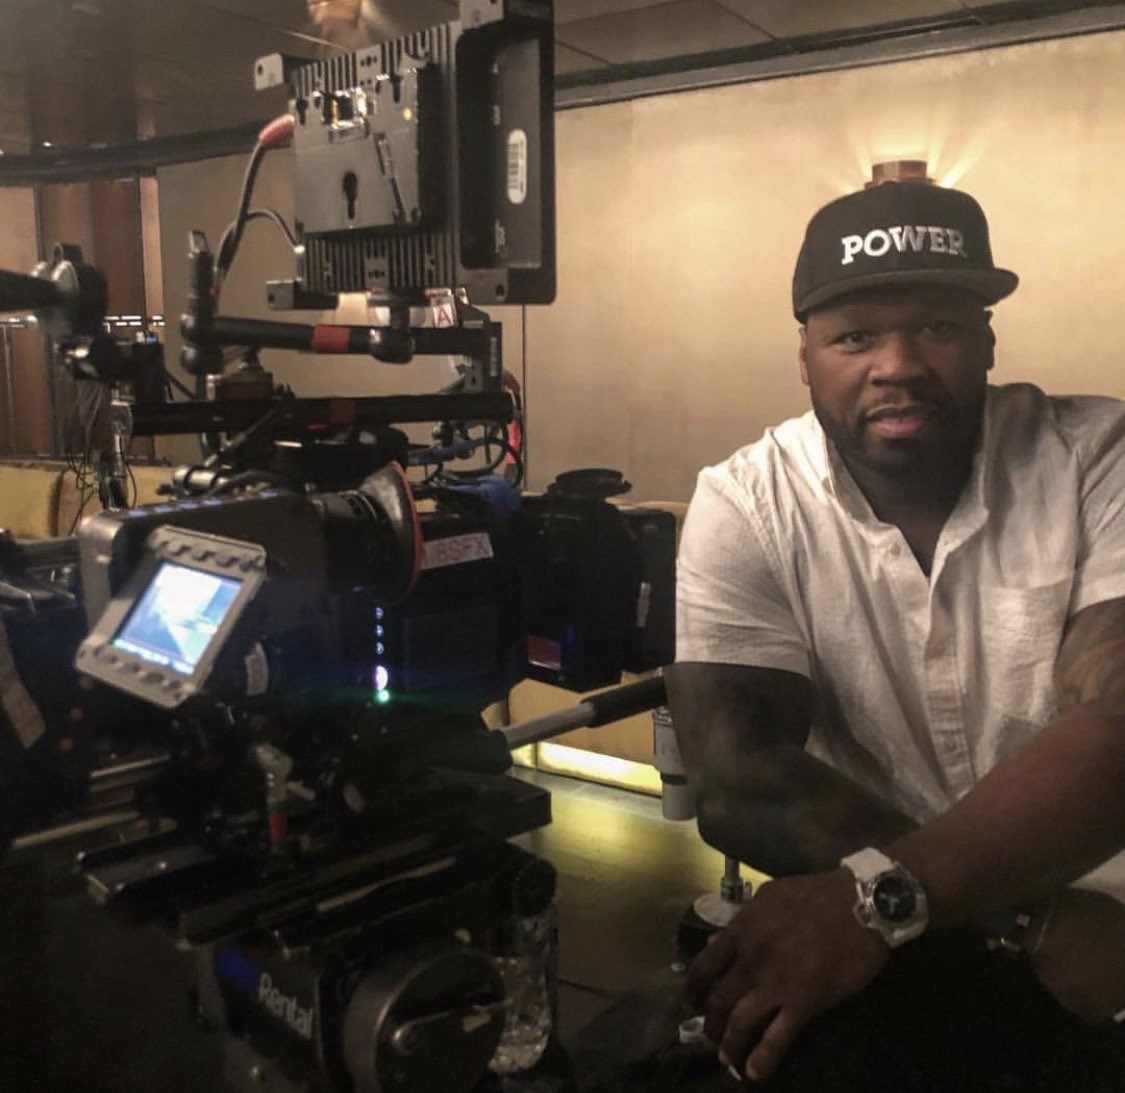 I'm on set working on my directorial debut episode 603 #bellator #lecheminduroi https://t.co/1E8Rmw8z3v